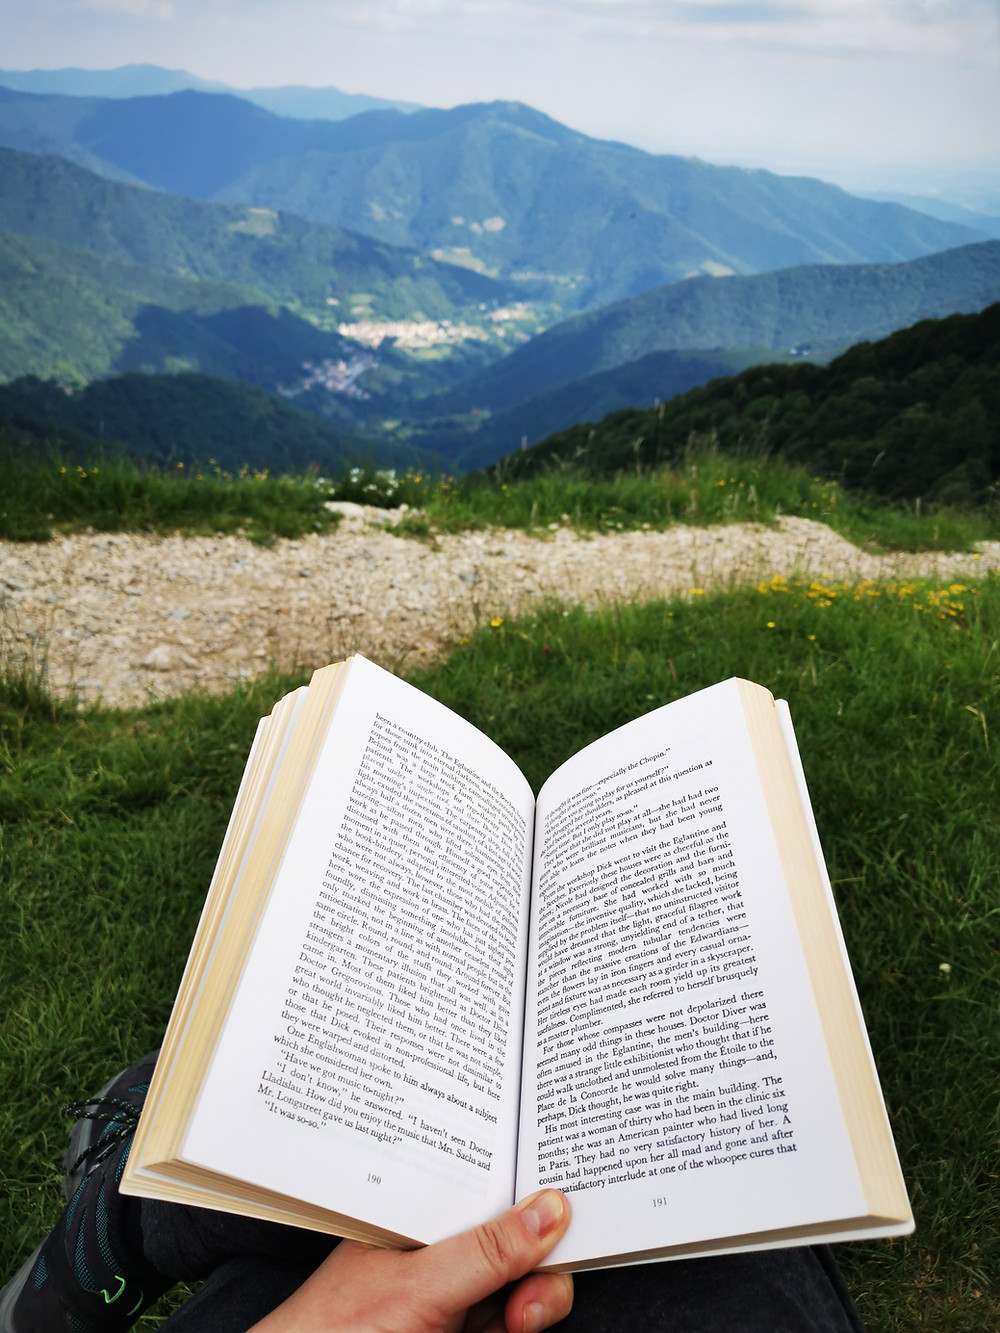 Summer reading. Photo Copyright: Era Kan